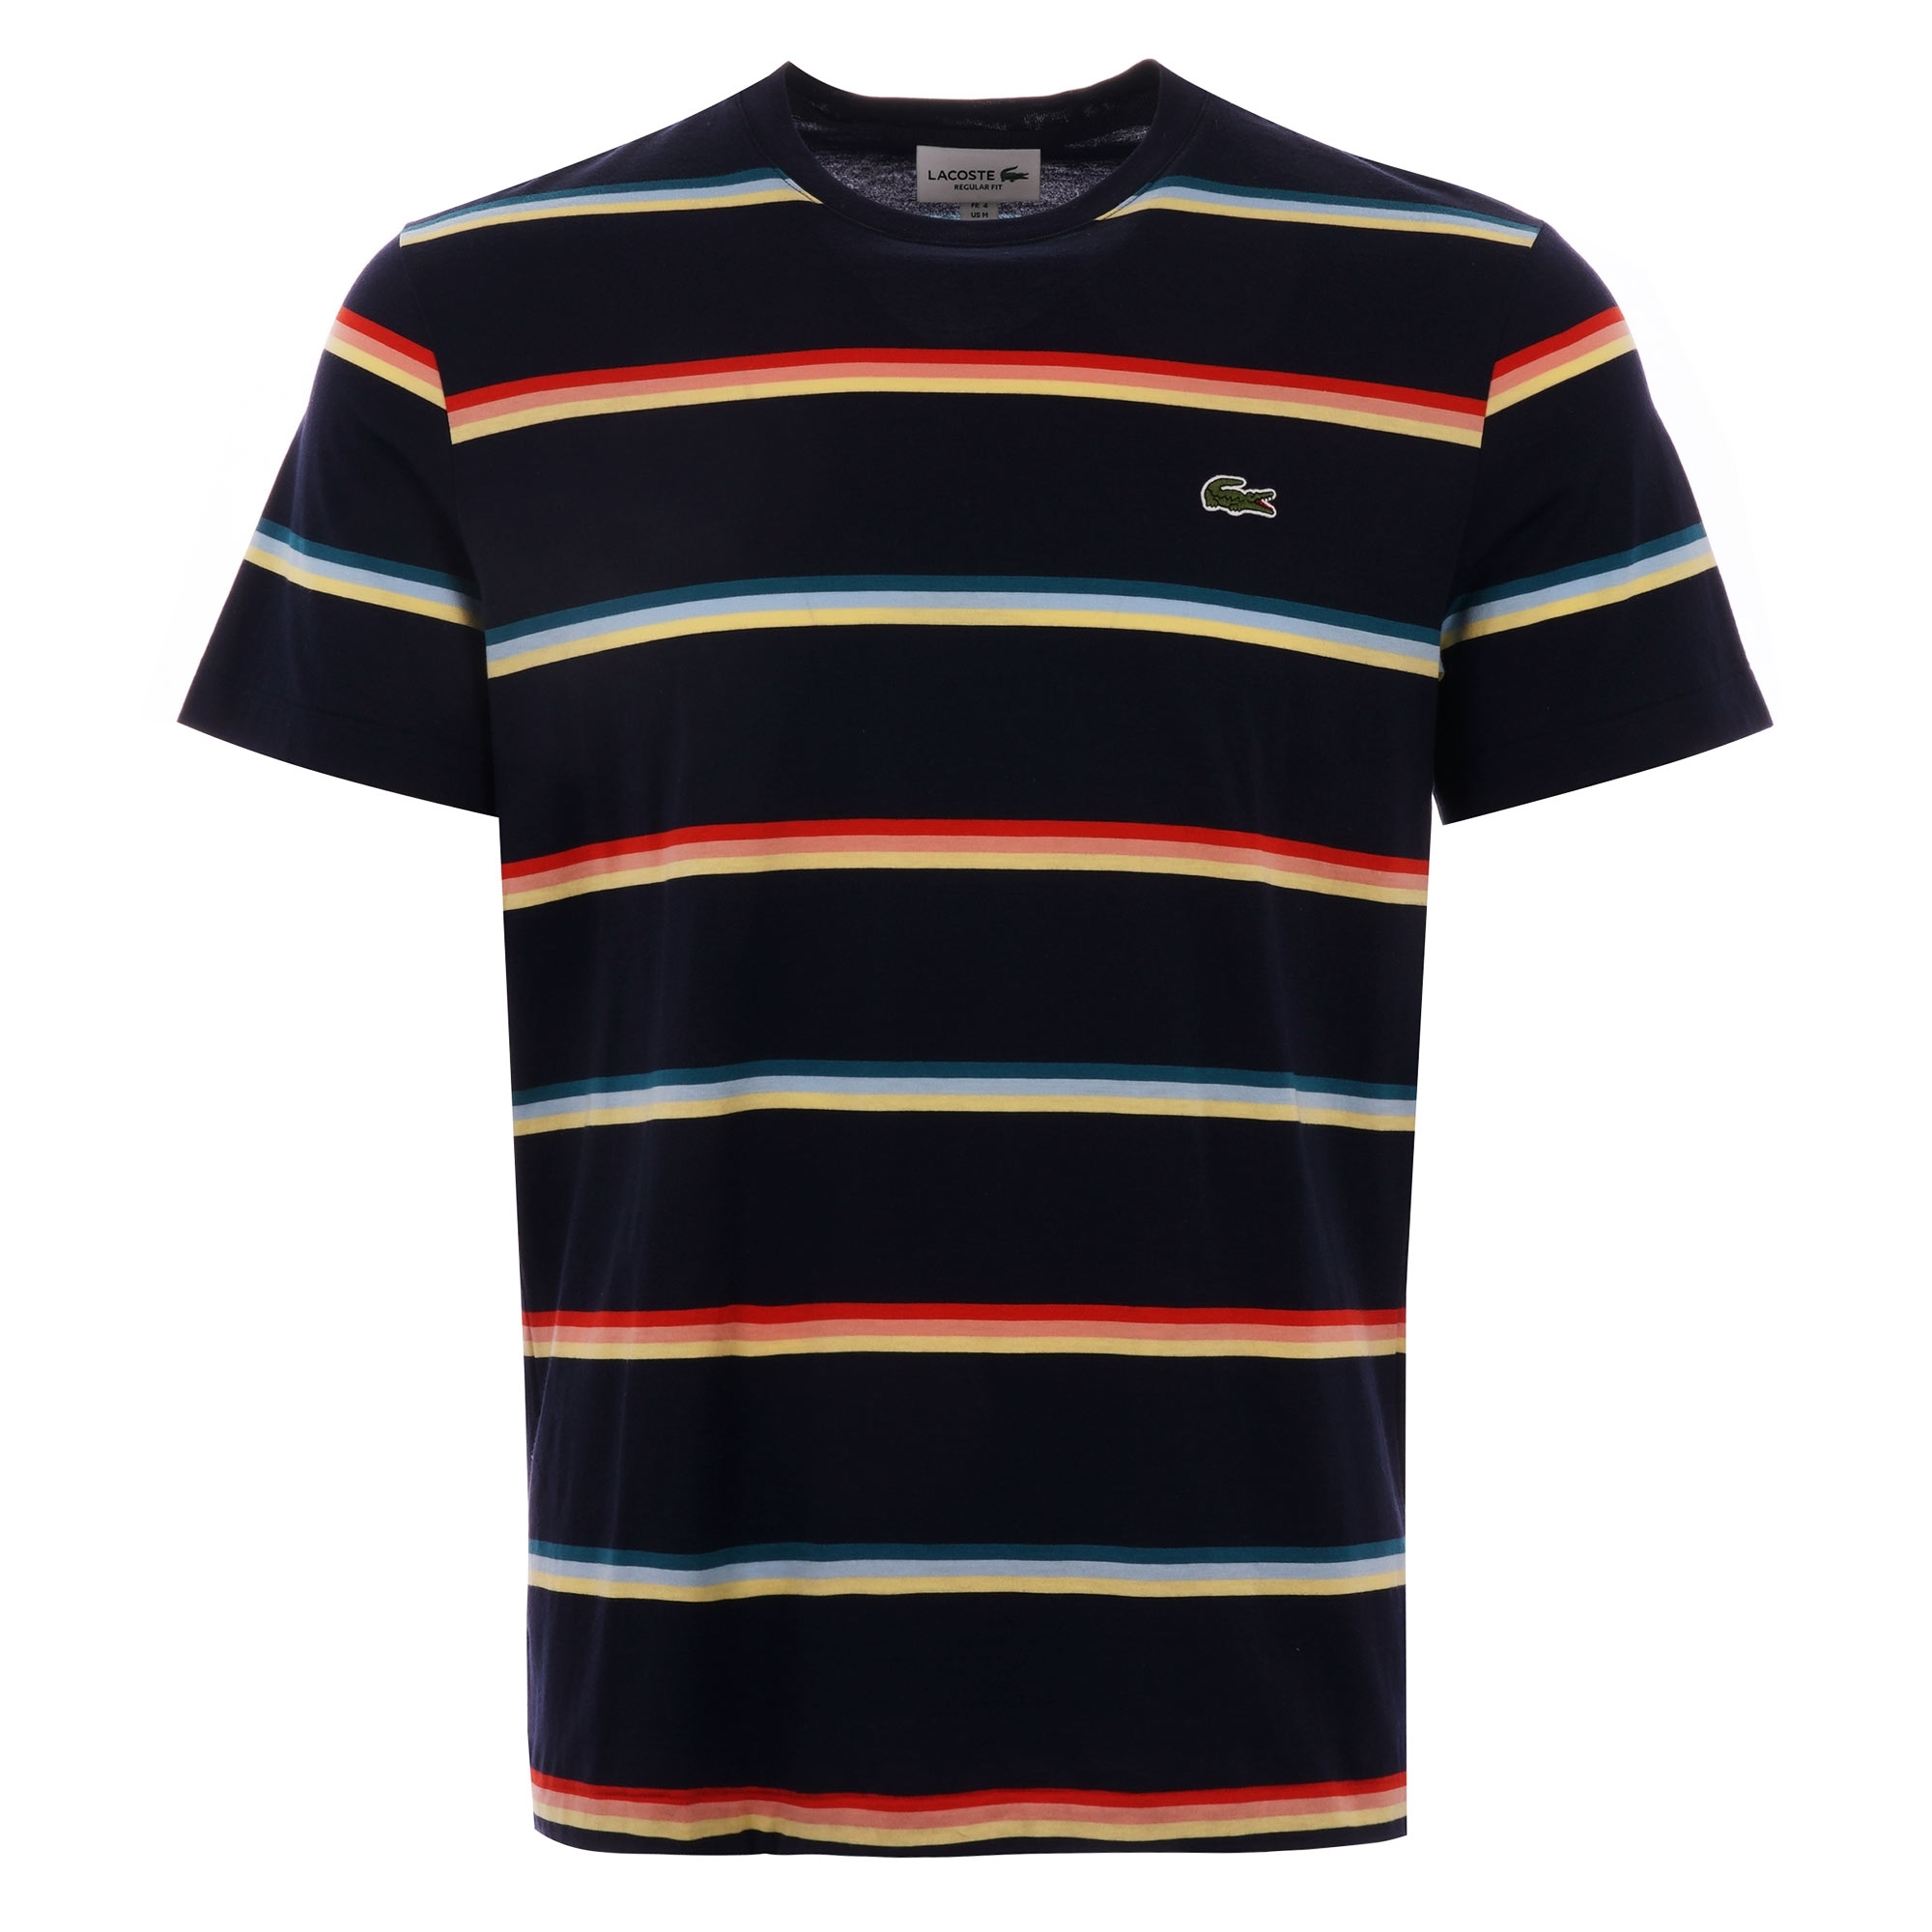 Lacoste Mens S//S Striped Jersey T-Shirt